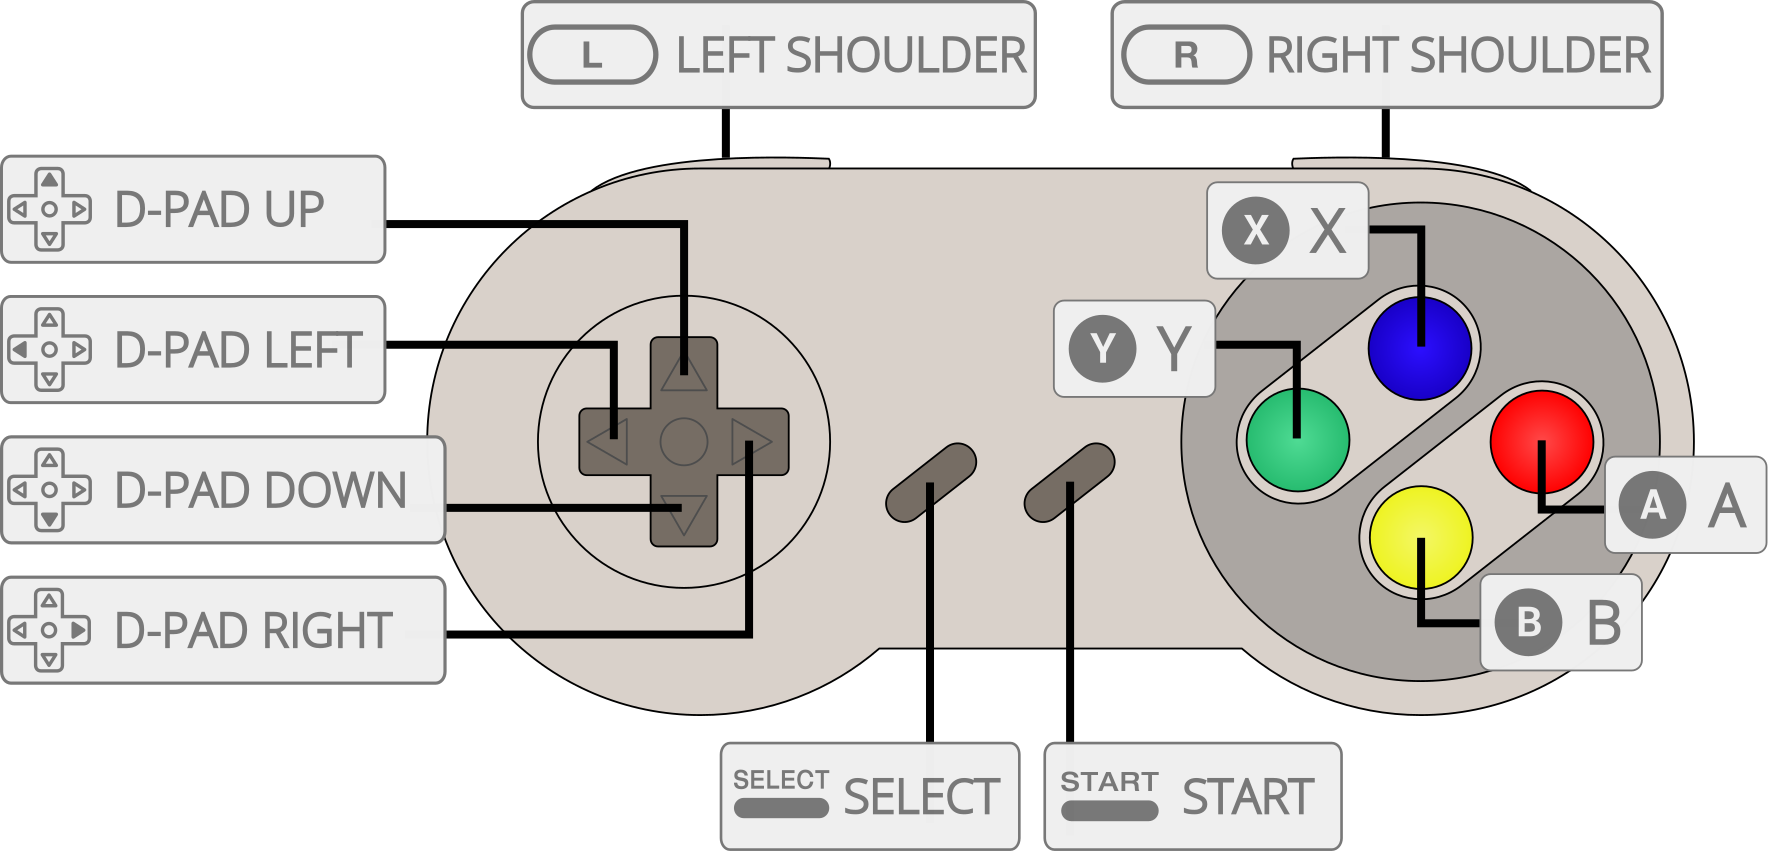 Snes Controller Diagram Not Lossing Wiring Usb Schematic Buffalo Classic W N64 Roms Retropie Forum Rh Org Uk Pc